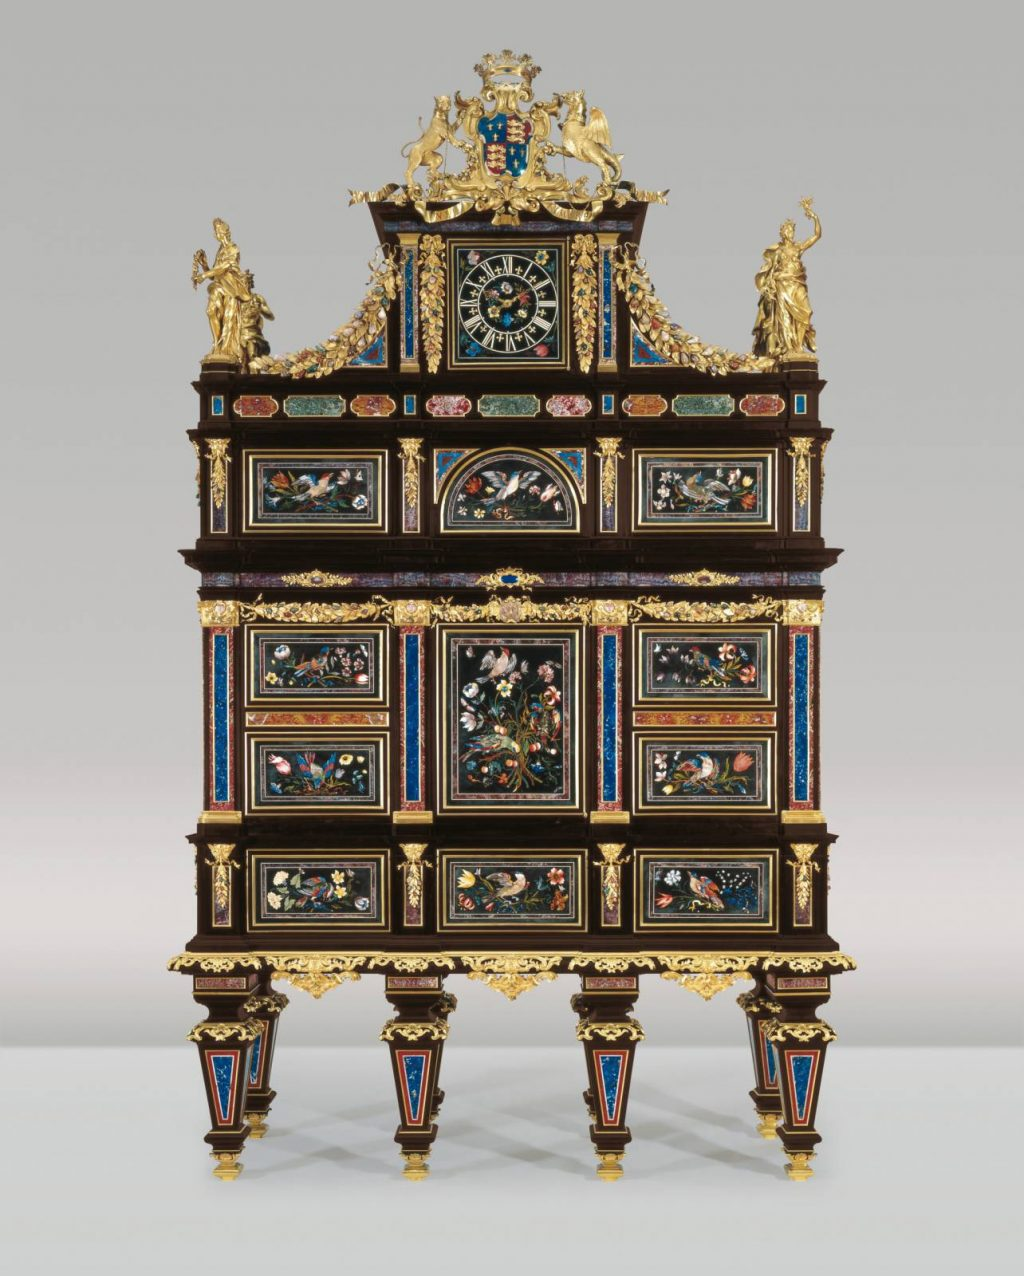 The Most Expensive Furniture Pieces in the World The Most Expensive Furniture Pieces in the World f6ea2709a391b3ba35aaca0db8a3a5fa5f496d73614504